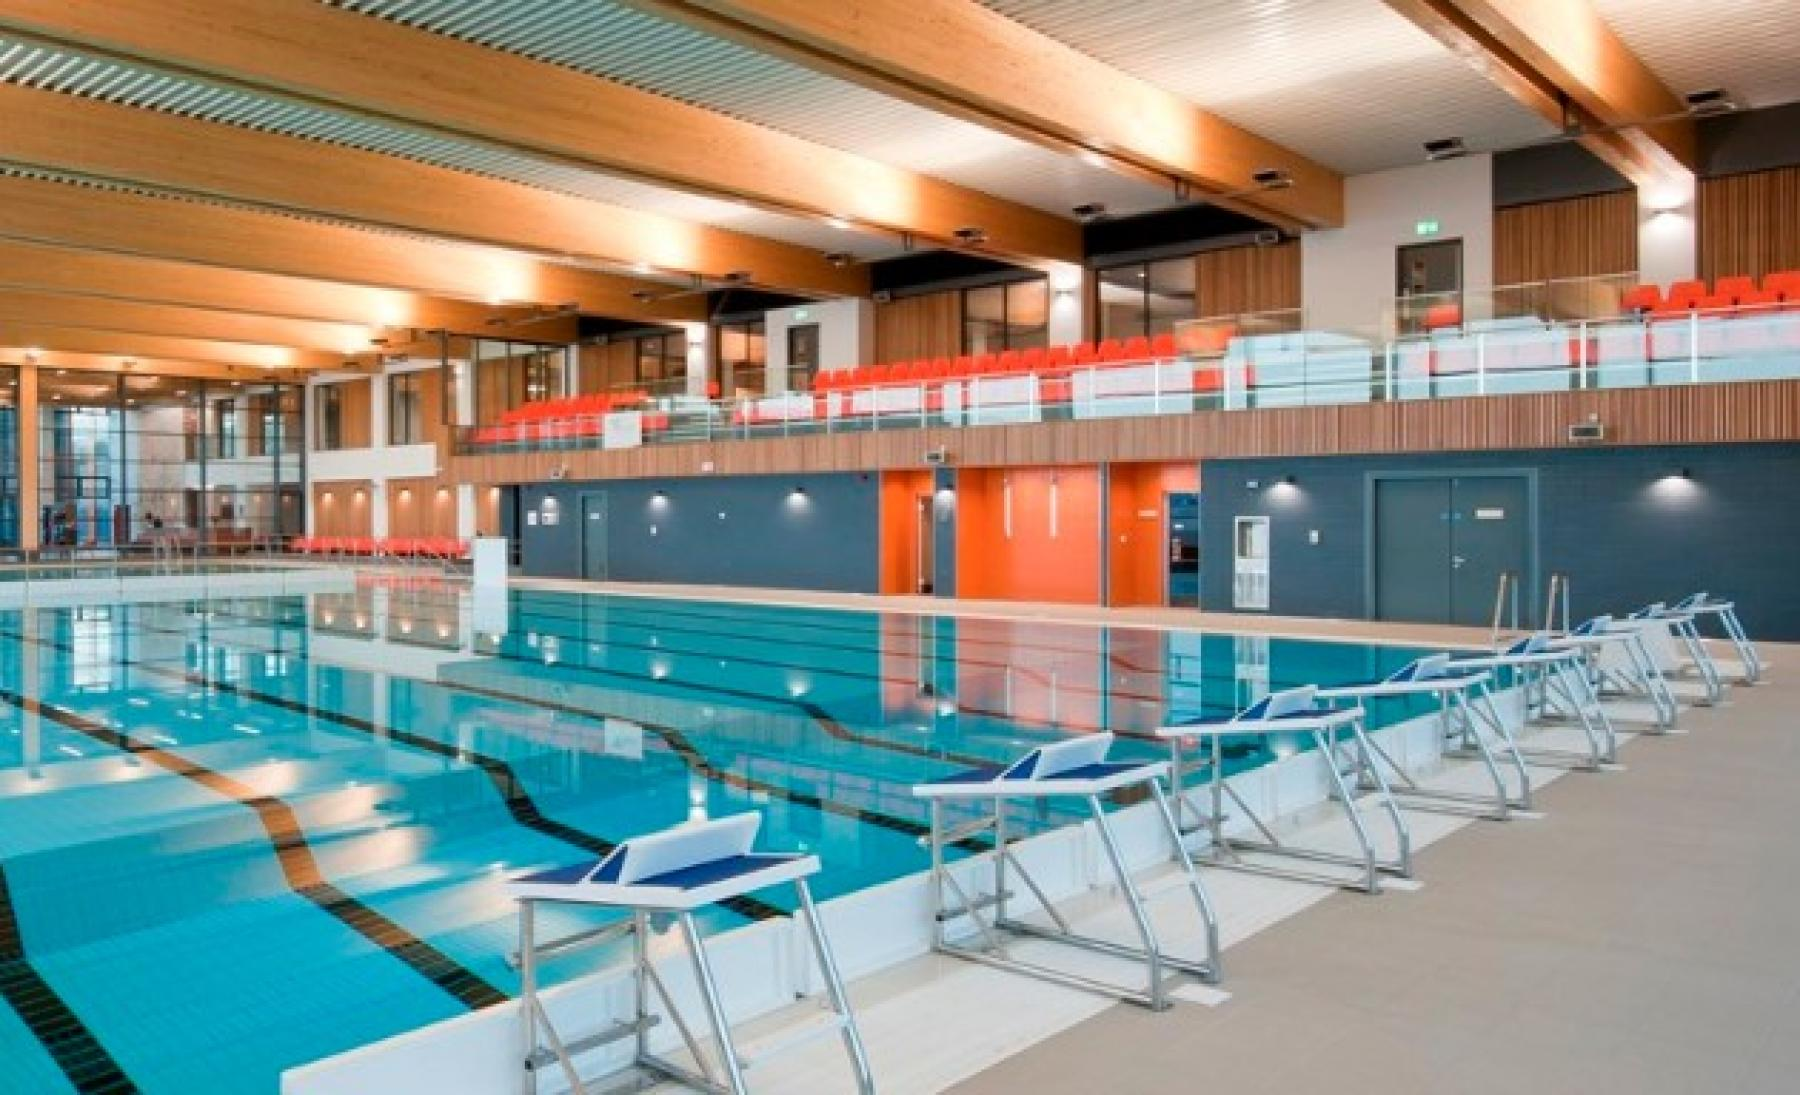 The newly built Places Leisure Eastleigh highlights the council's commitment to promoting a healthy lifestyle.